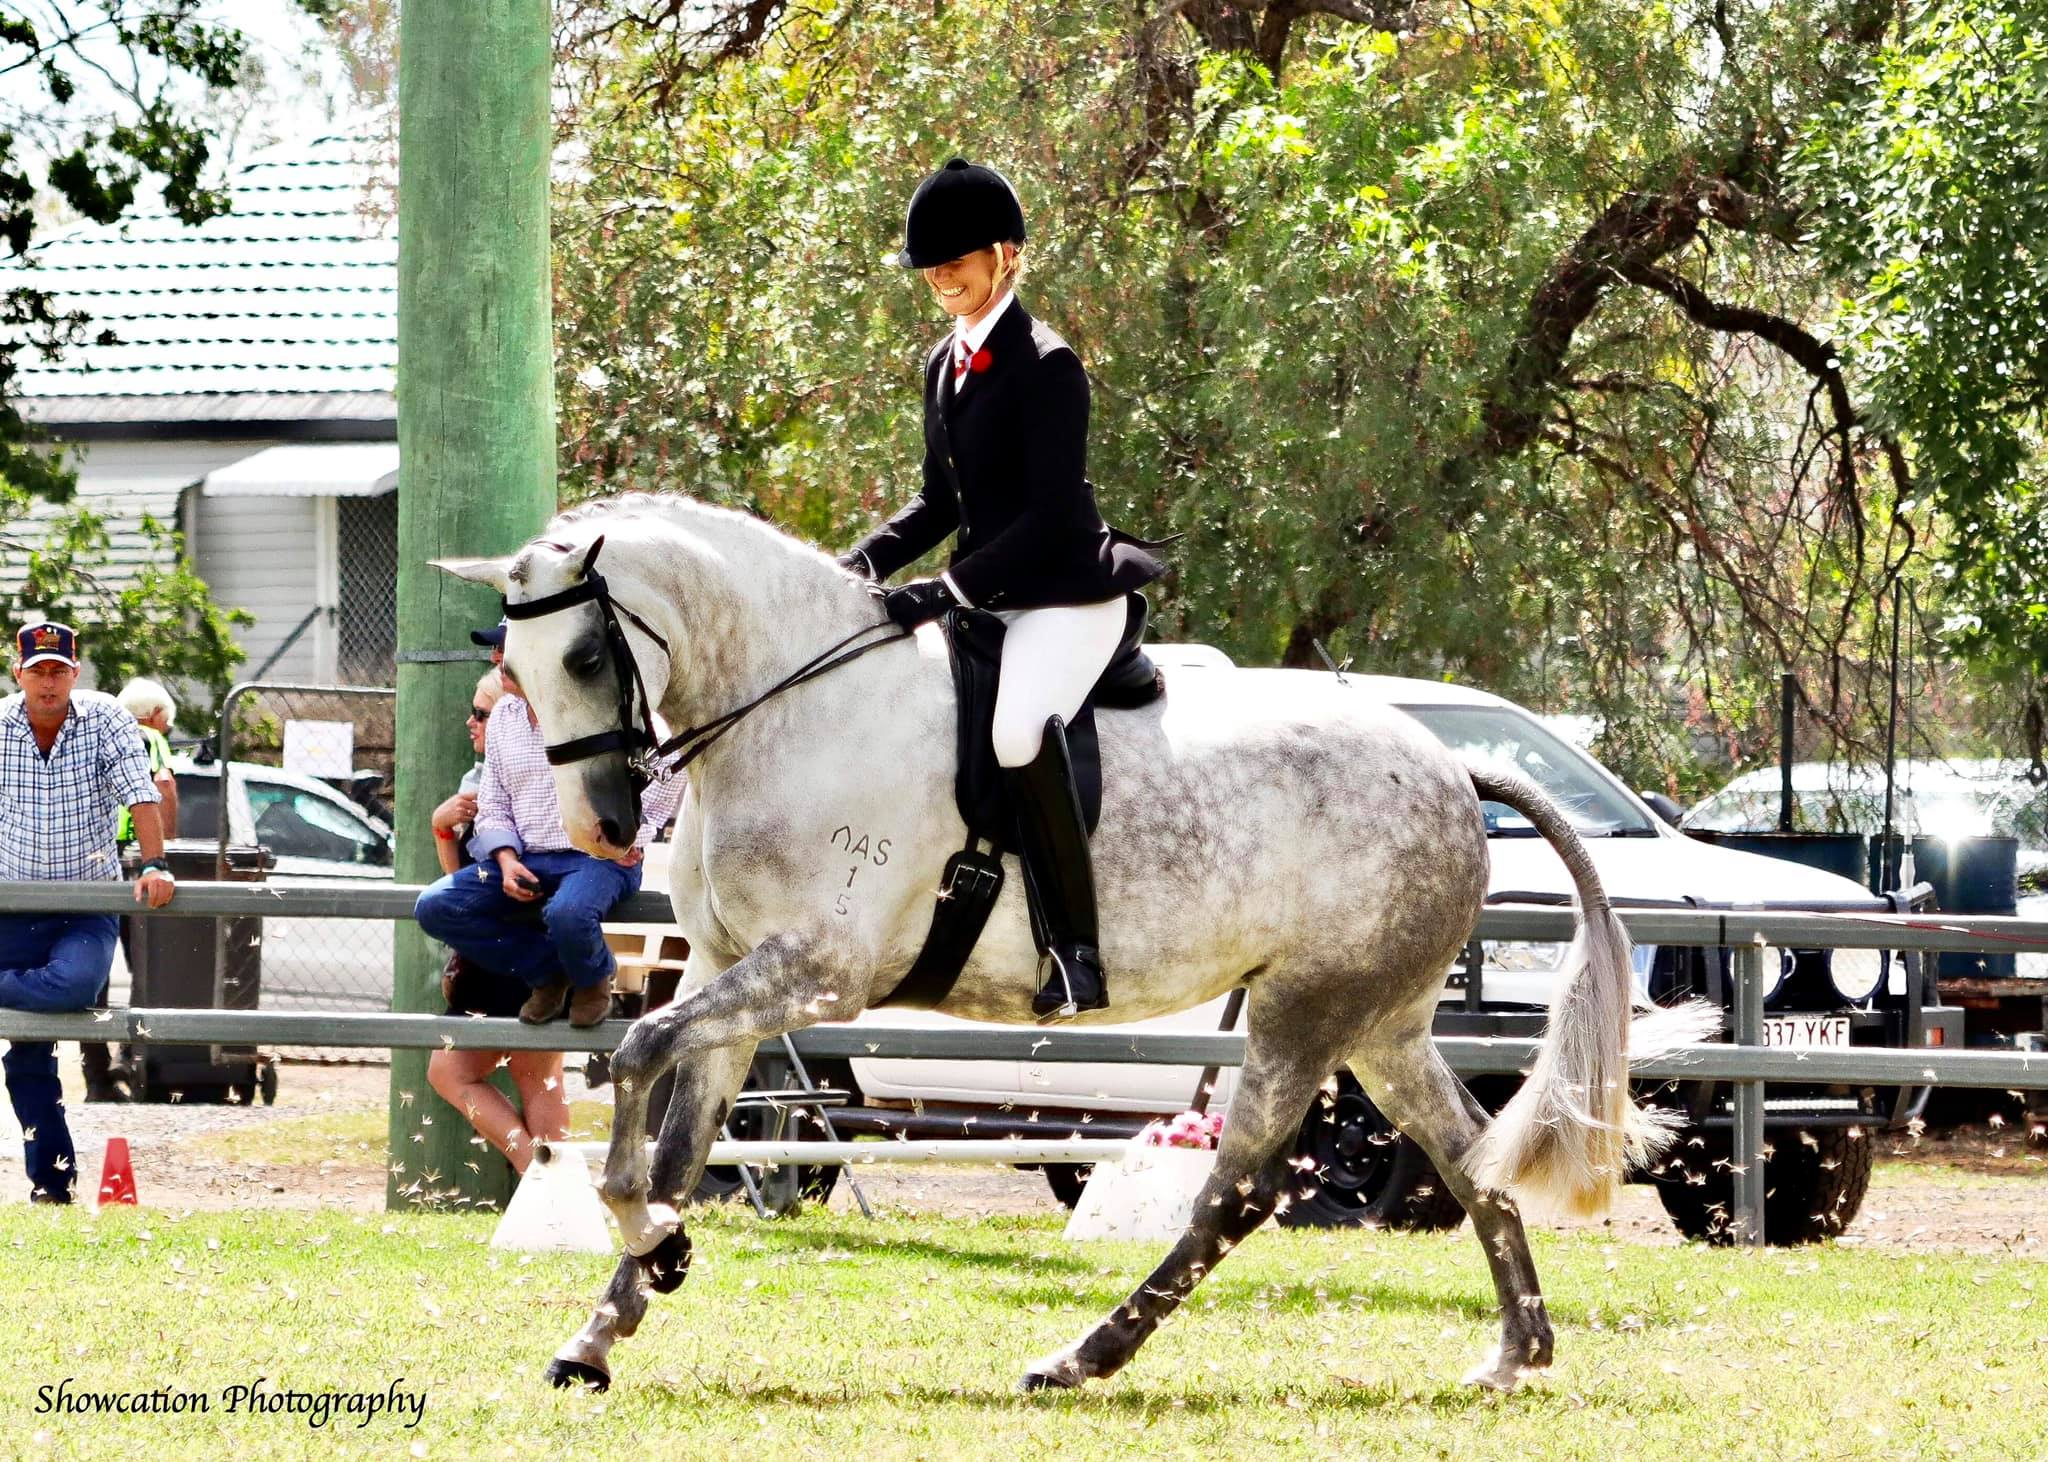 Tamara Patch riding Arcstan Antoinette at Pittsworth Show through locusts to win Supreme Rider of the Show in 2021.